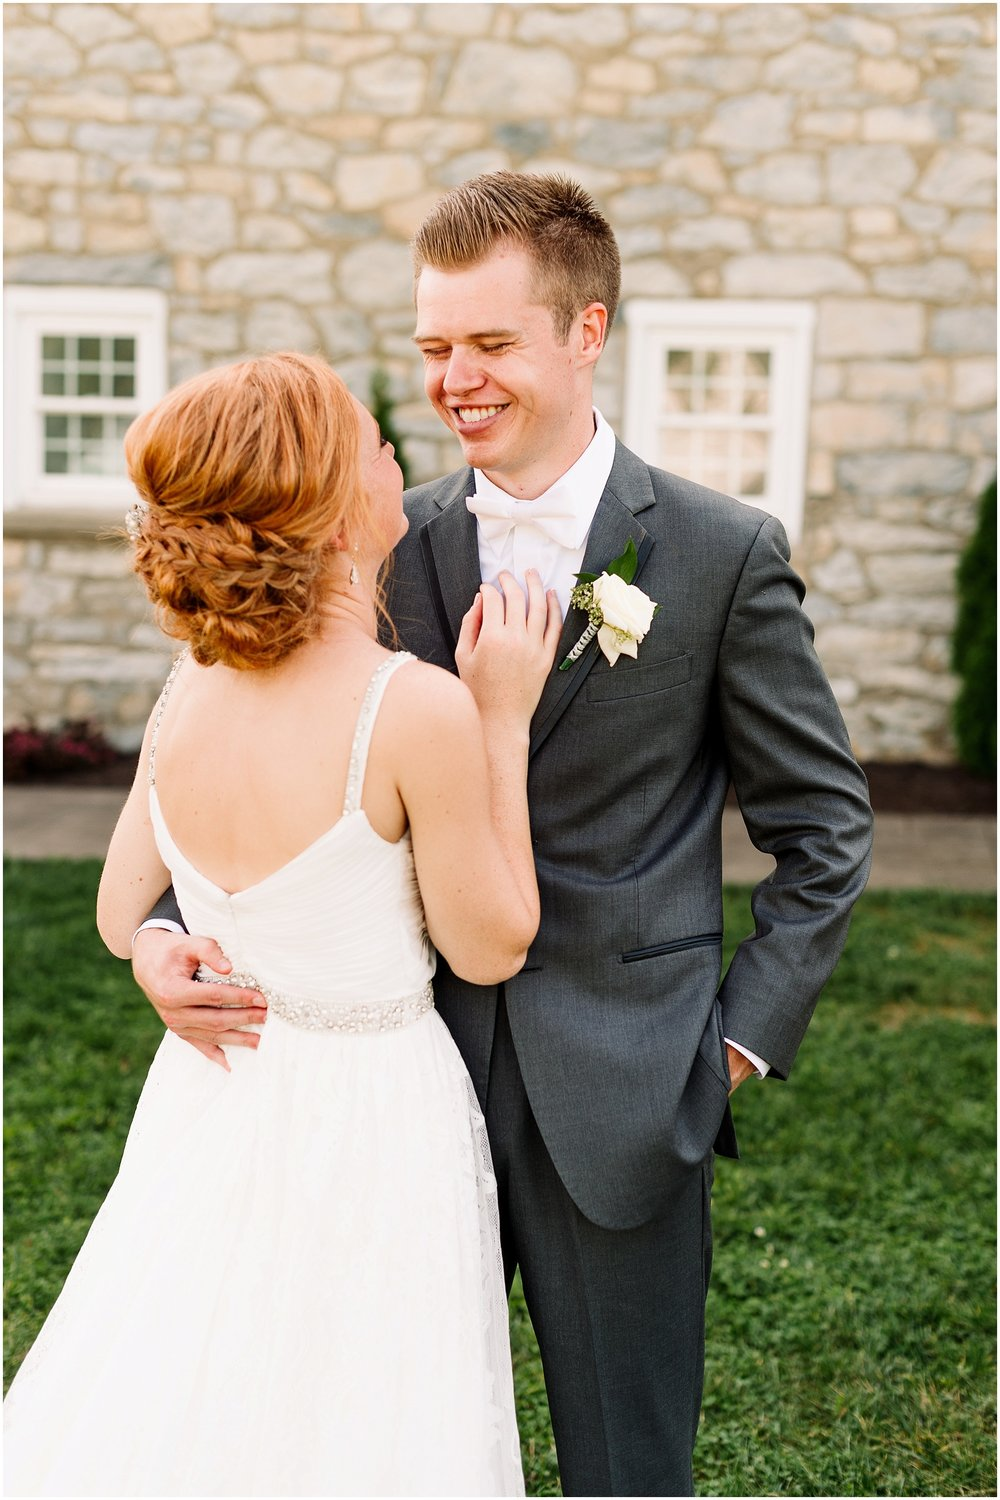 Hannah Leigh Photography The Barn at Silverstone Wedding Lancaster PA_5914.jpg